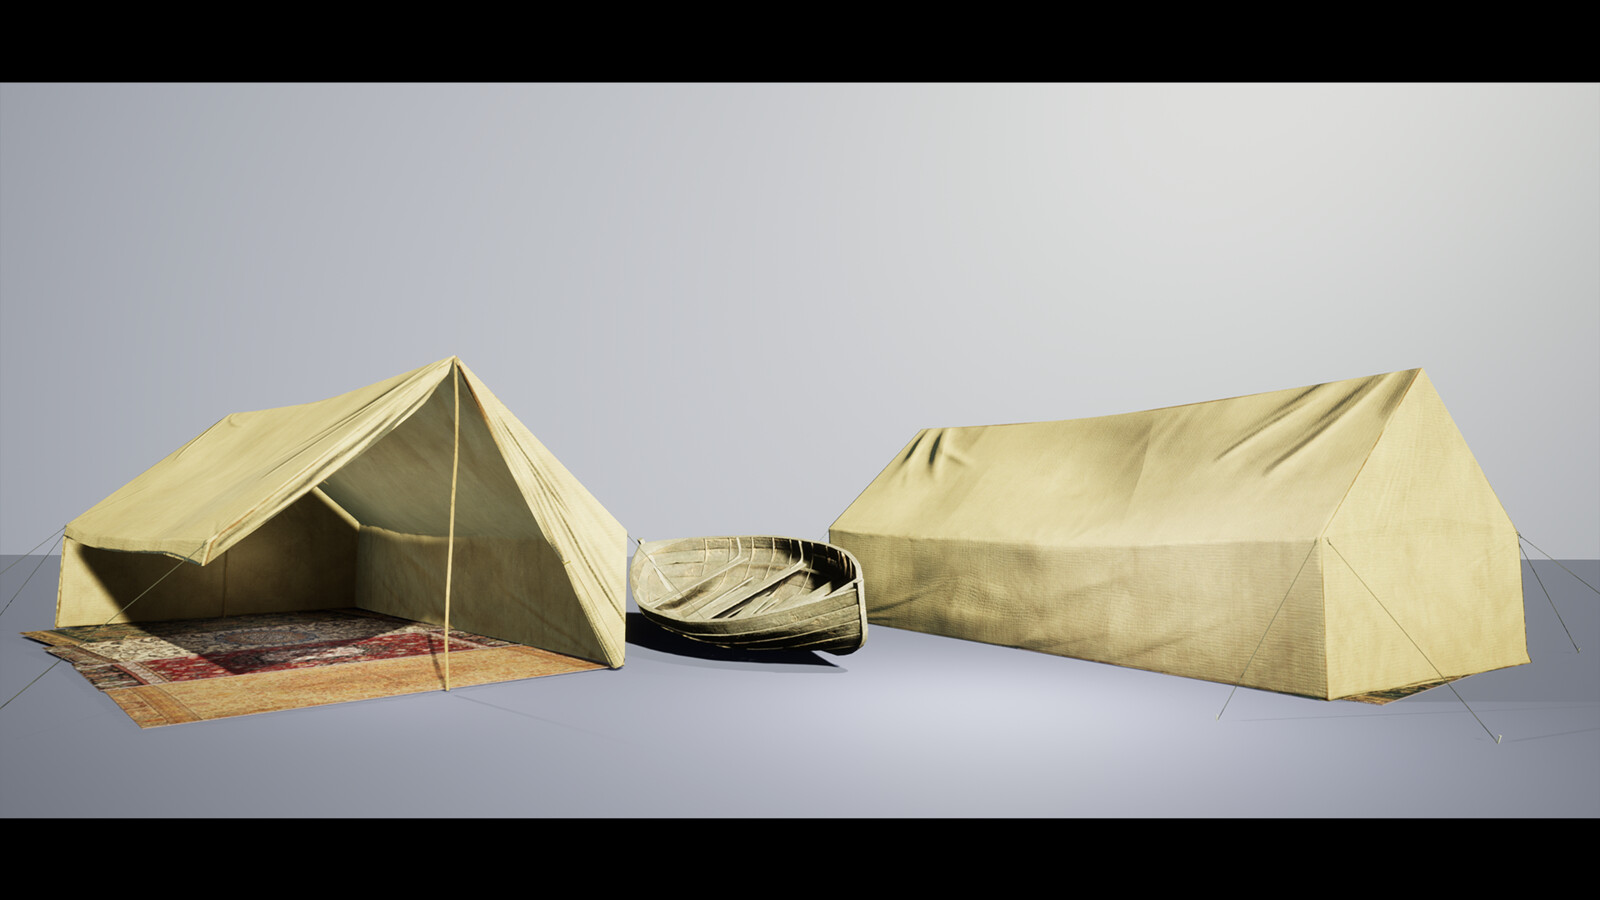 Tent+Boat Breakdown